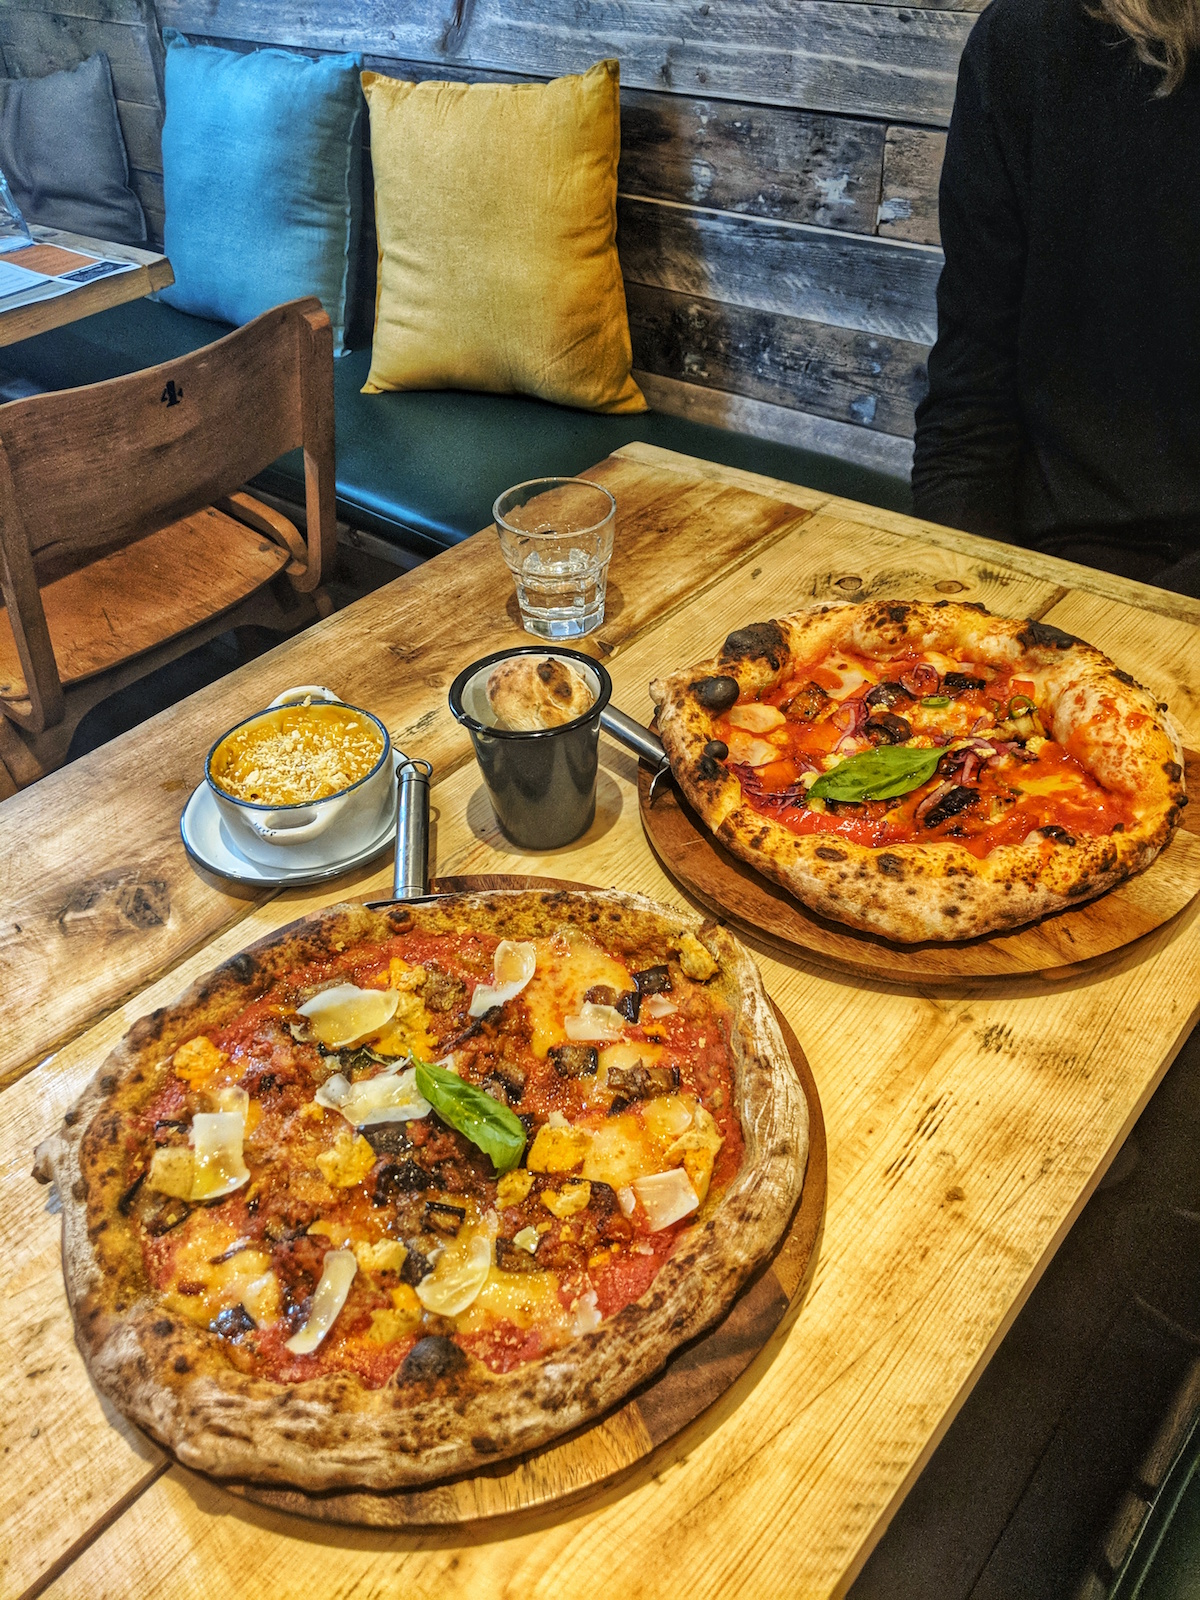 Pizzas from Purezza's entirely vegan menu